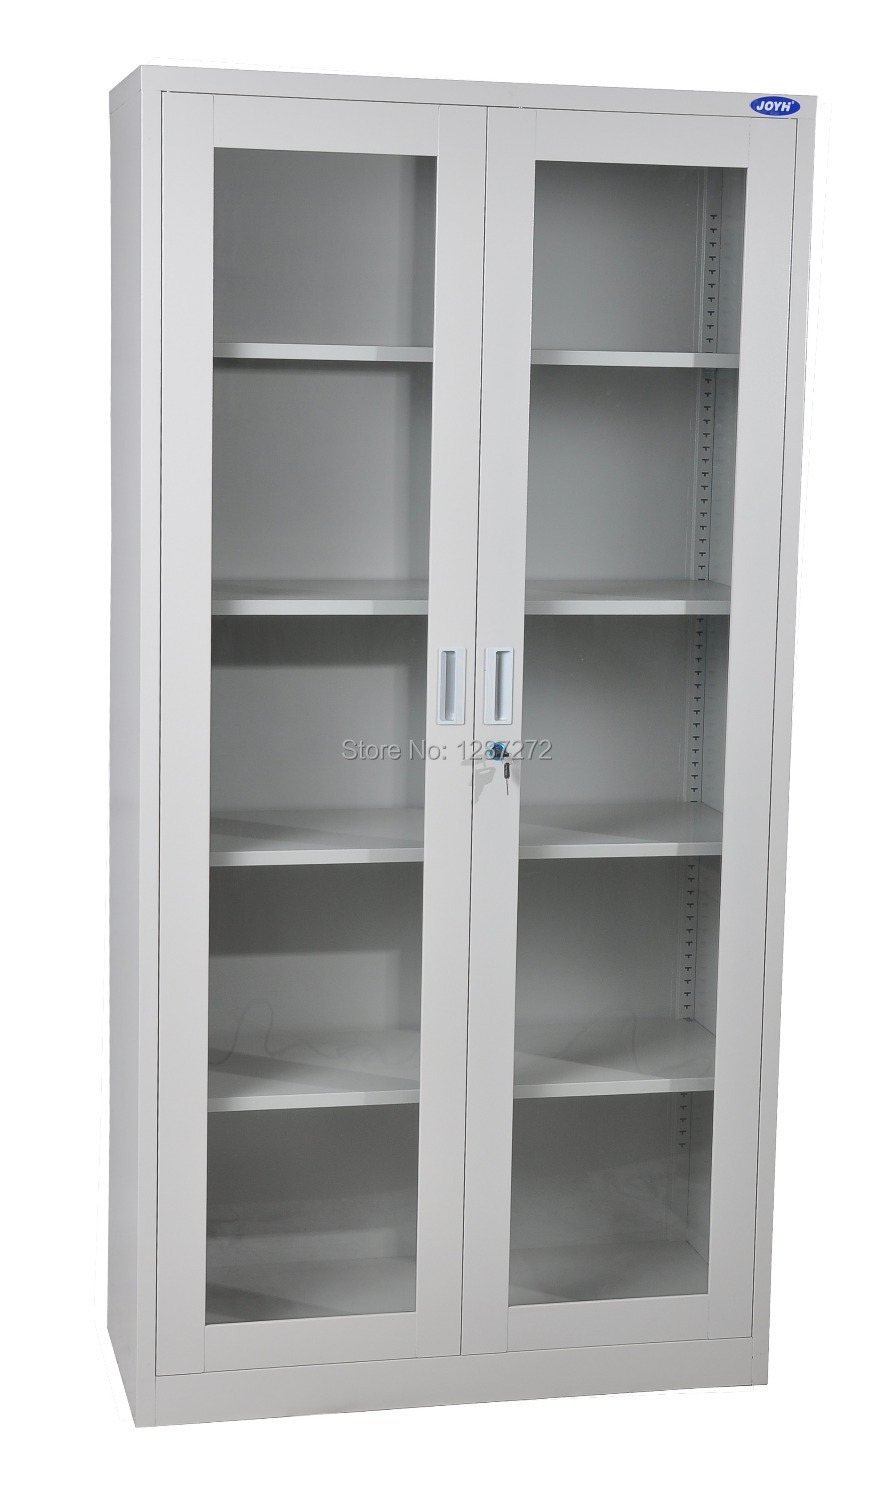 2014 New Design Office Steel Filing Cabinet Metal Cabinet With Glass Door Office Furniture